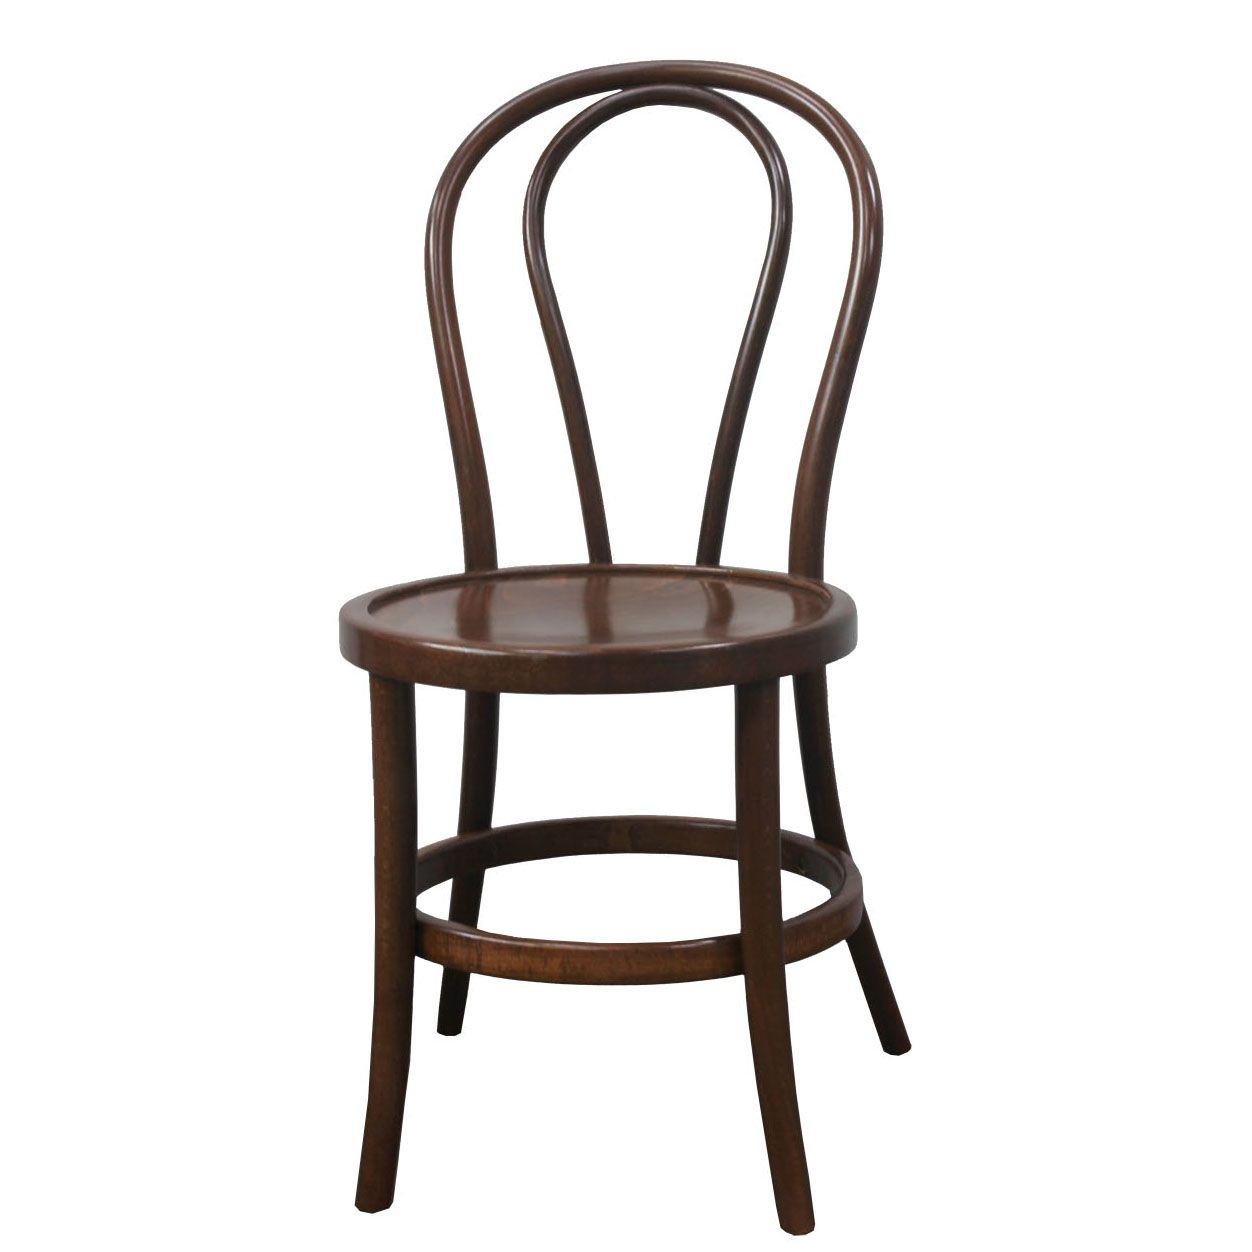 Ordinaire White Bentwood Chair | S + N: Carnival | Pinterest | Bentwood Chairs And  Room